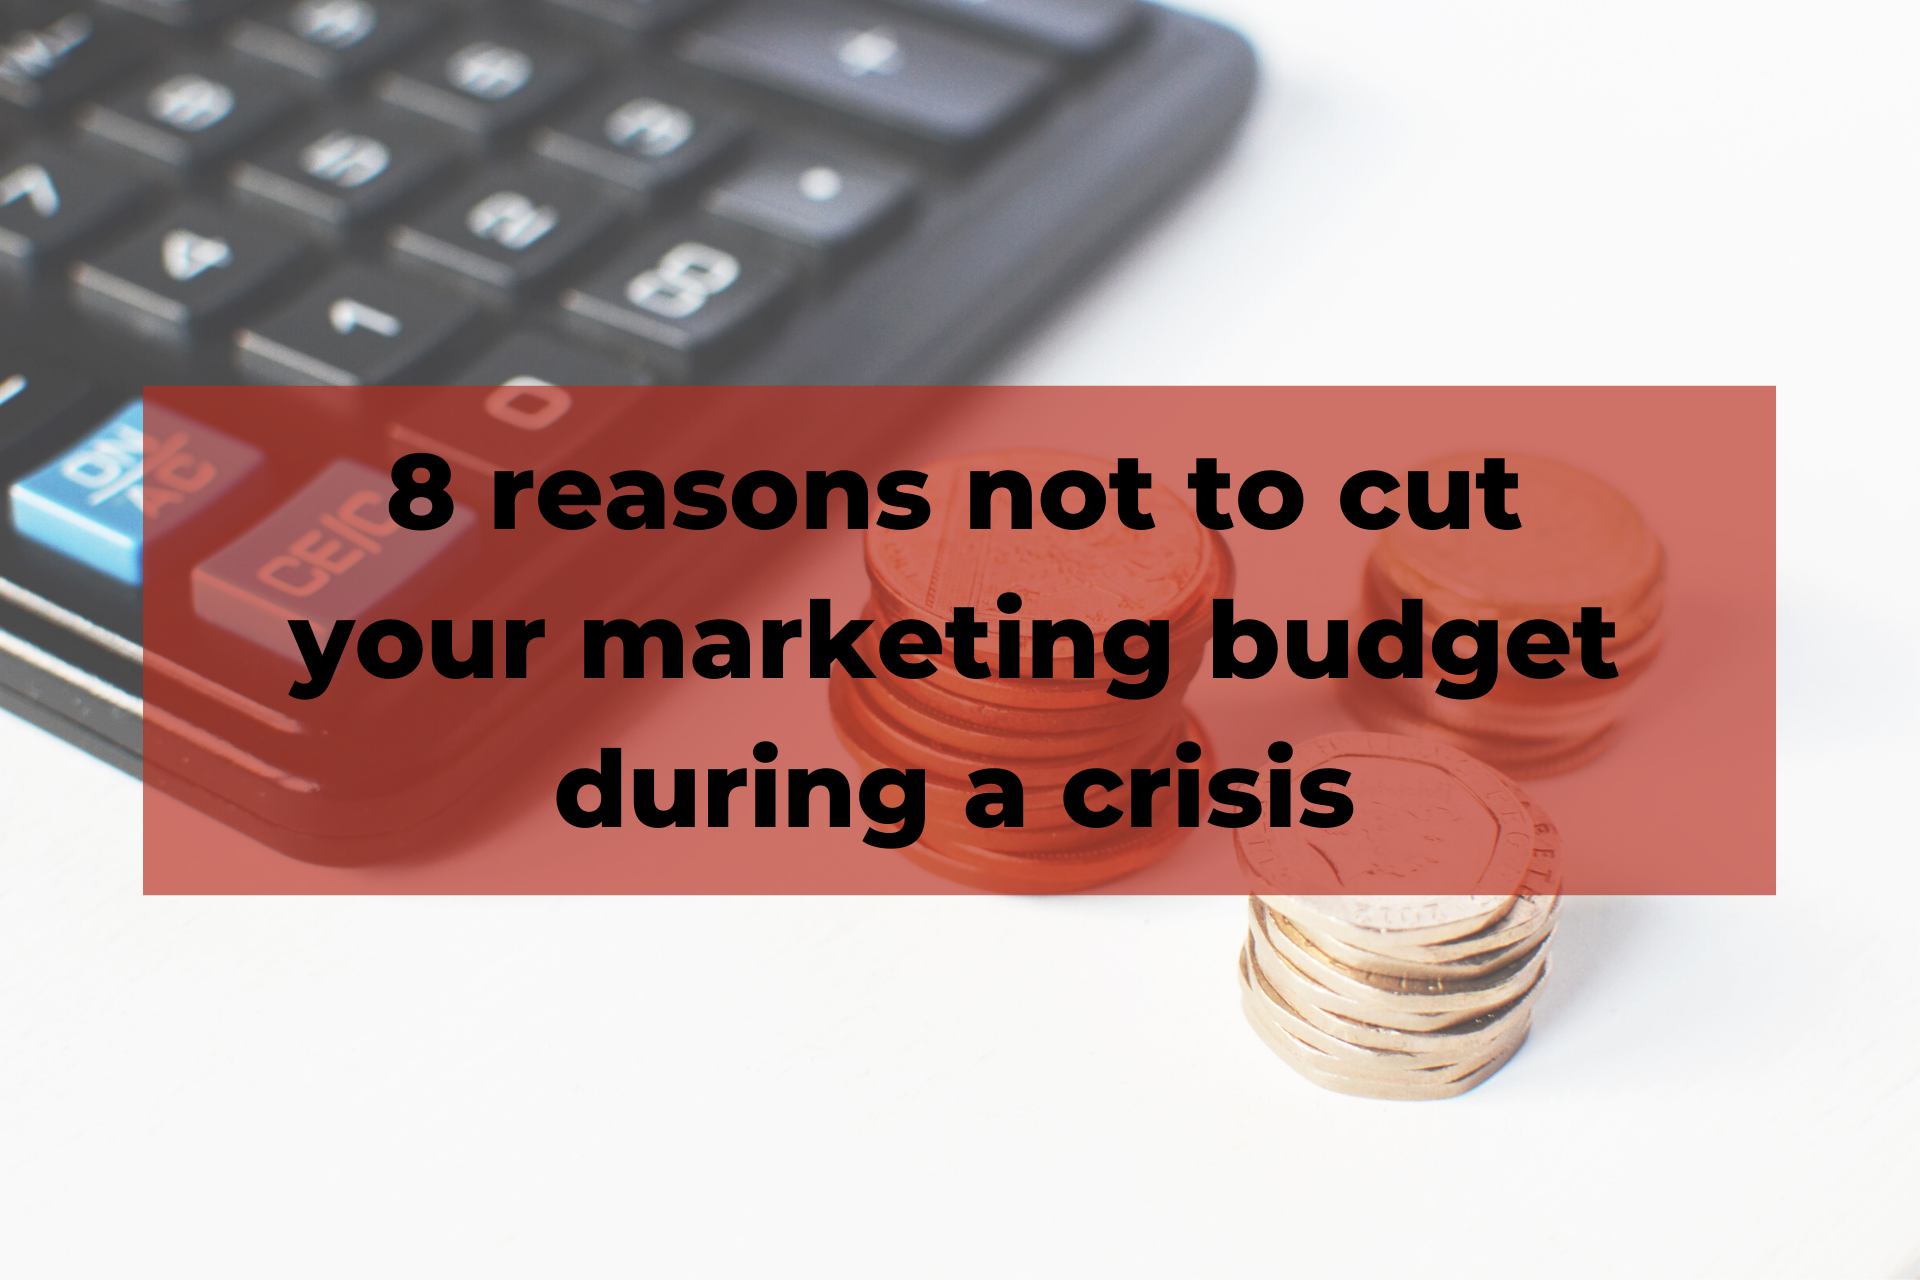 8 reasons not to cut your marketing budget during a crisis